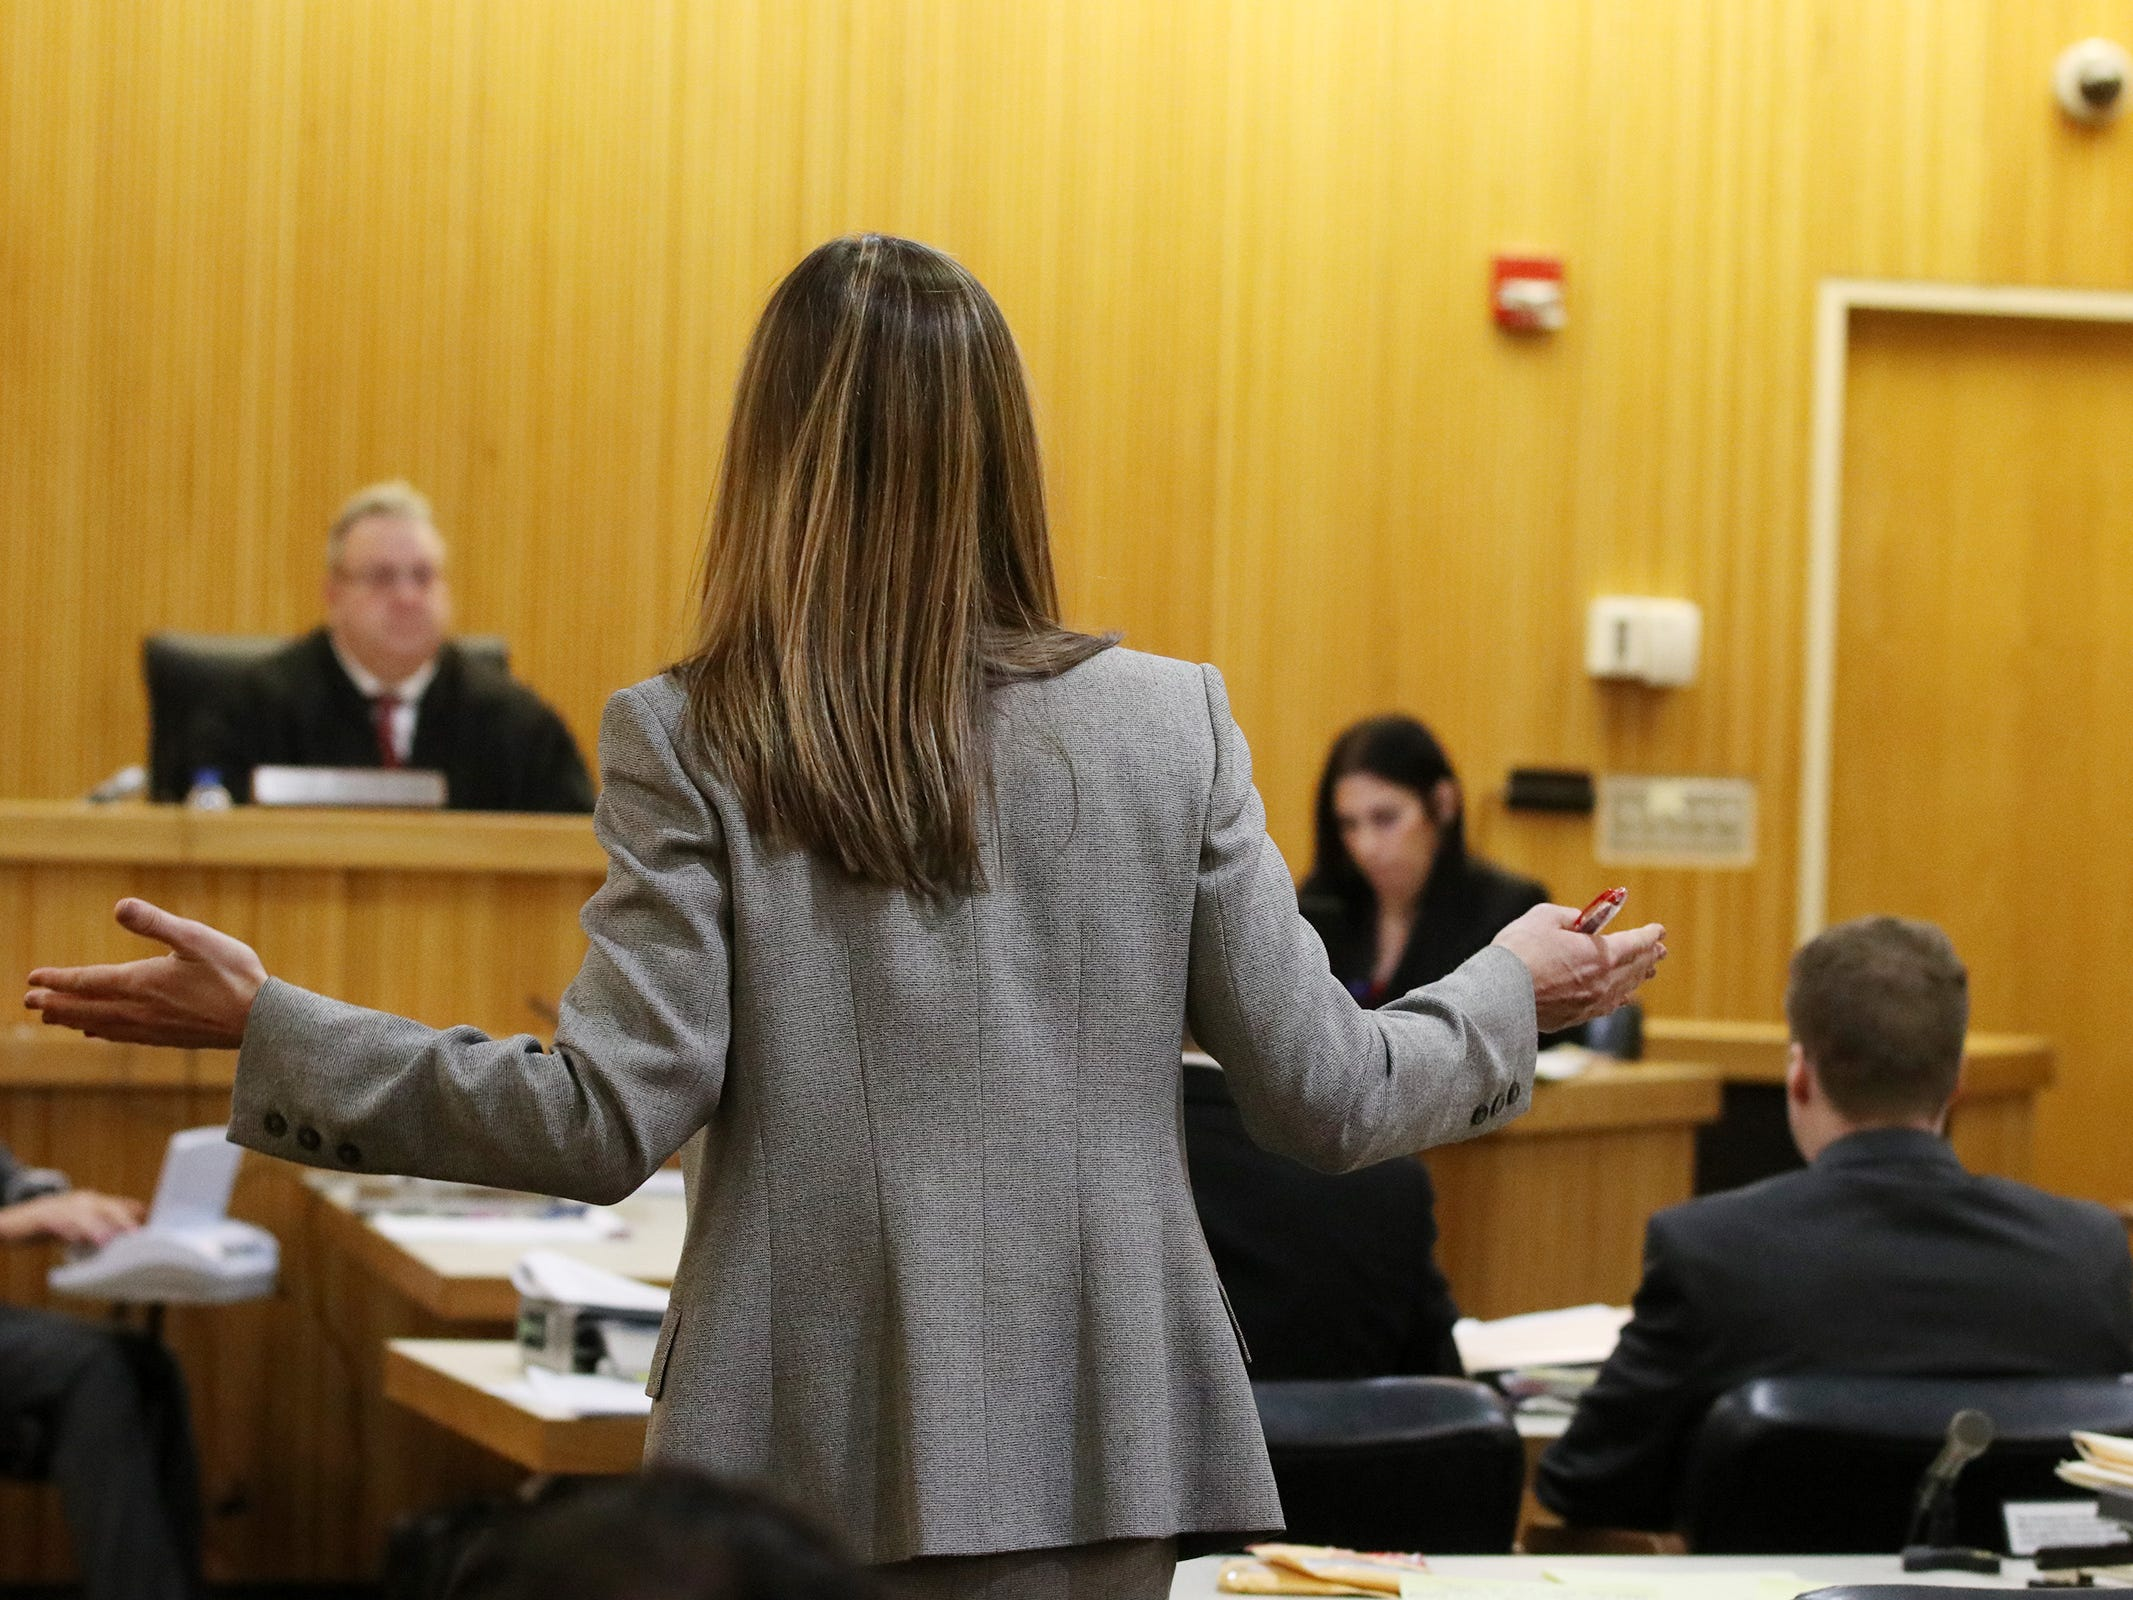 Meghan Doyle, assistant Monmouth County prosecutor, argued the state's to continue during the trial of Liam McAtasney, who is charged with the murder of former high school classmate, Sarah Stern, before Superior Court Judge Richard W. English at the Monmouth County Courthouse in Freehold, NJ Thursday, February 14, 2019. The judge was considering a motion from the defense for a mistrial after it was discovered that two jurors, who were later dismissed, were communicating on Facebook Messenger.